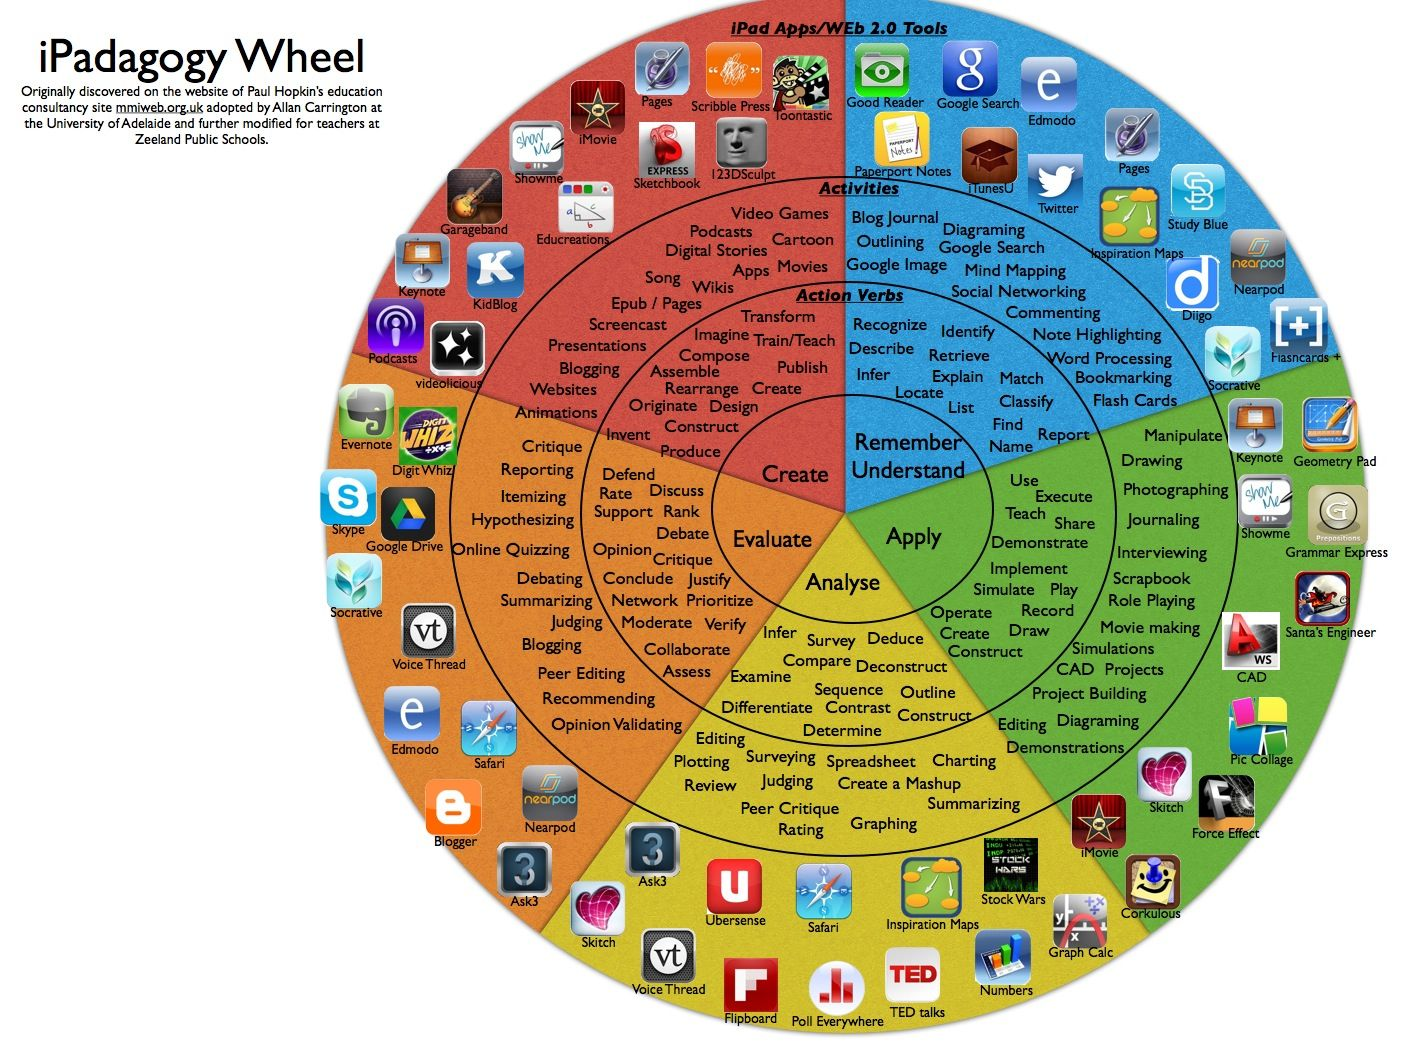 iPadagogy Bloom's Taxonomy App Wheels Blooms taxonomy